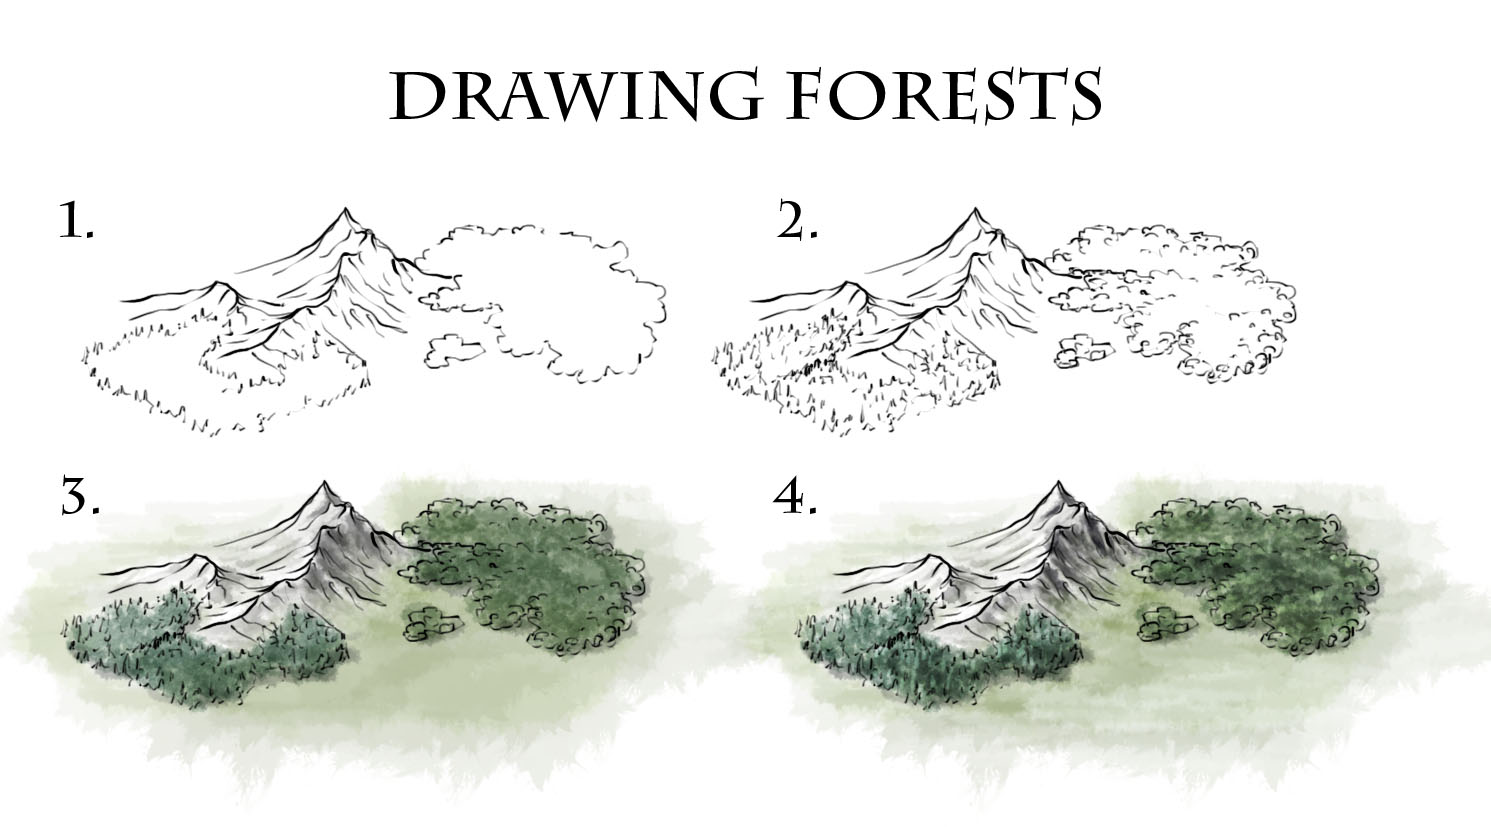 I bet you draw a tree with colorful leaves! How To Draw Forests Fantastic Maps